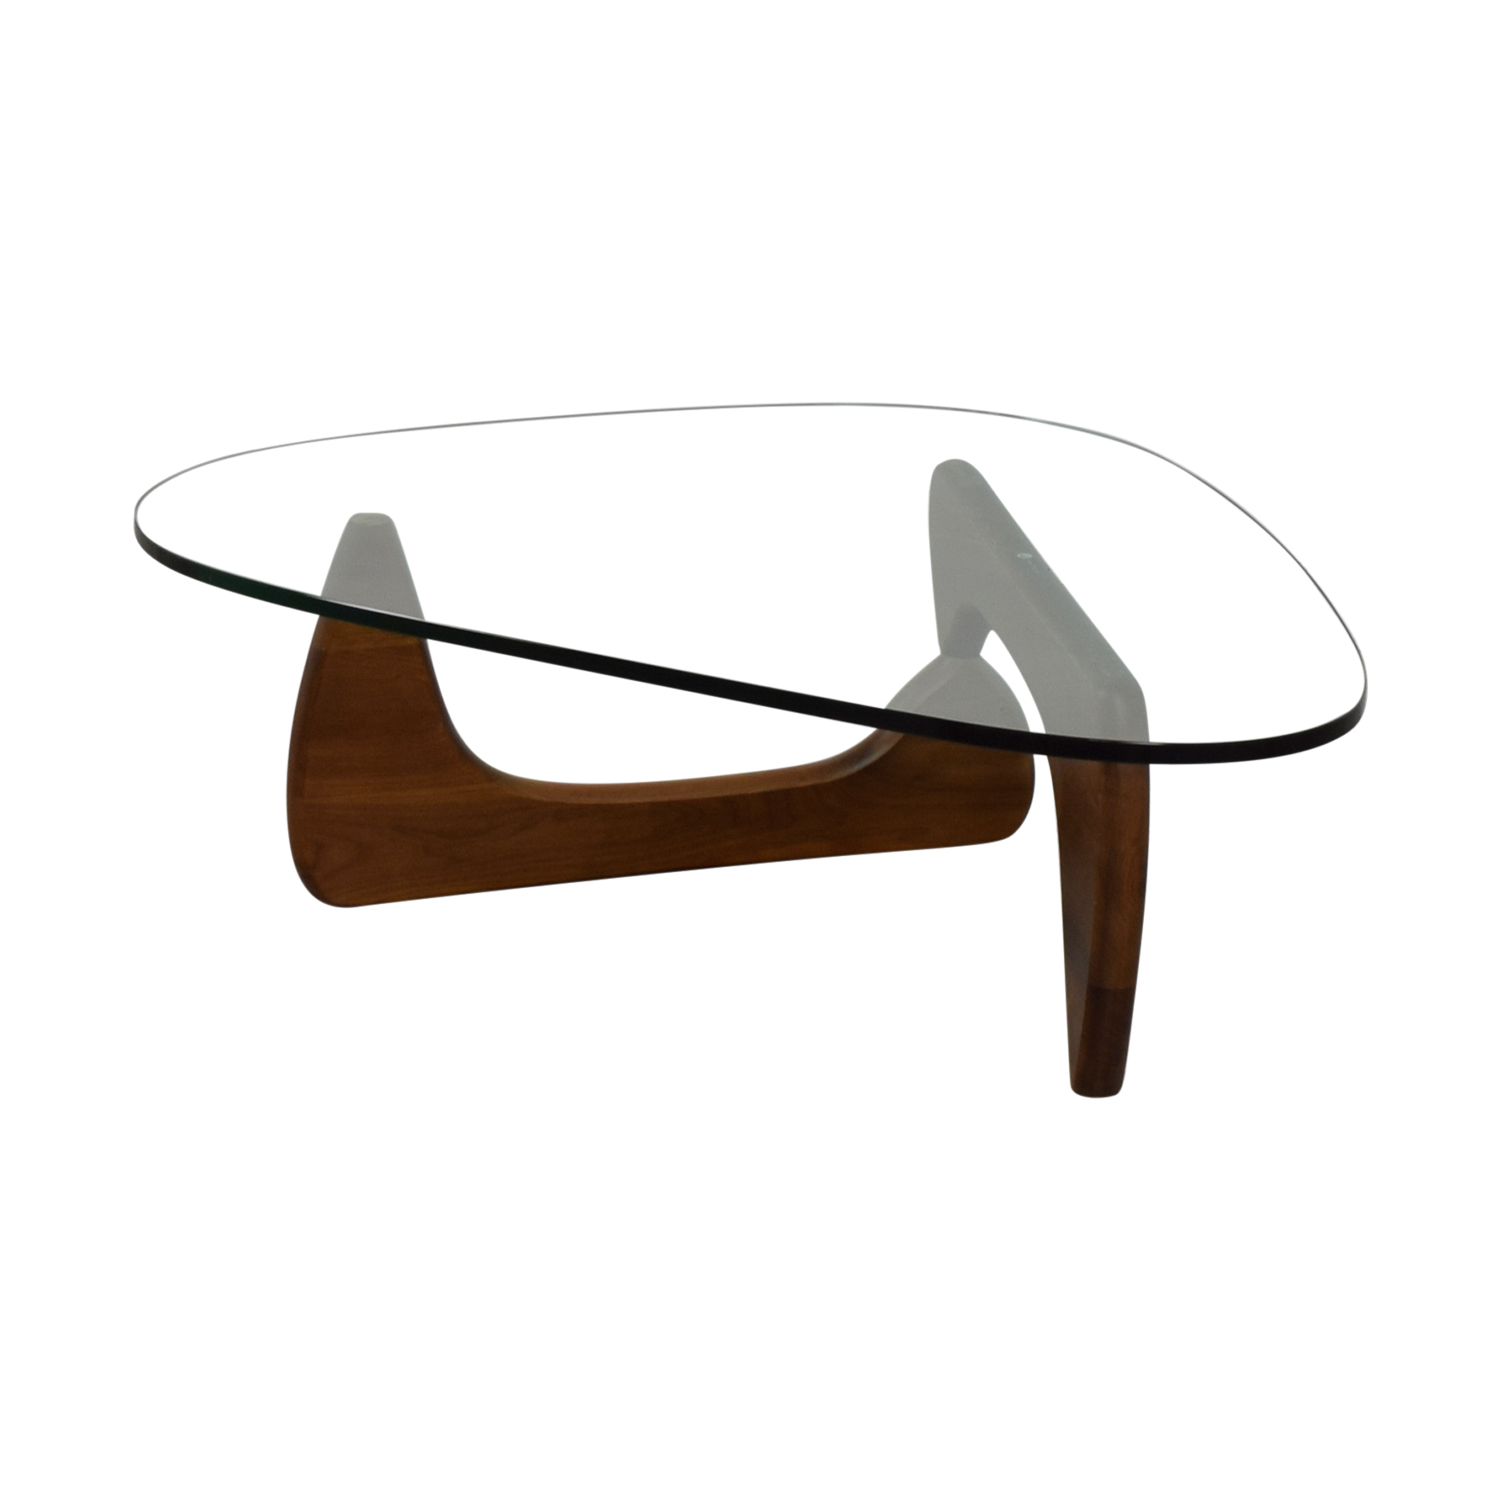 wonderful Used Noguchi Coffee Table Part - 2: ... Noguchi Noguchi Walnut and Glass Coffee Table Signed discount ...